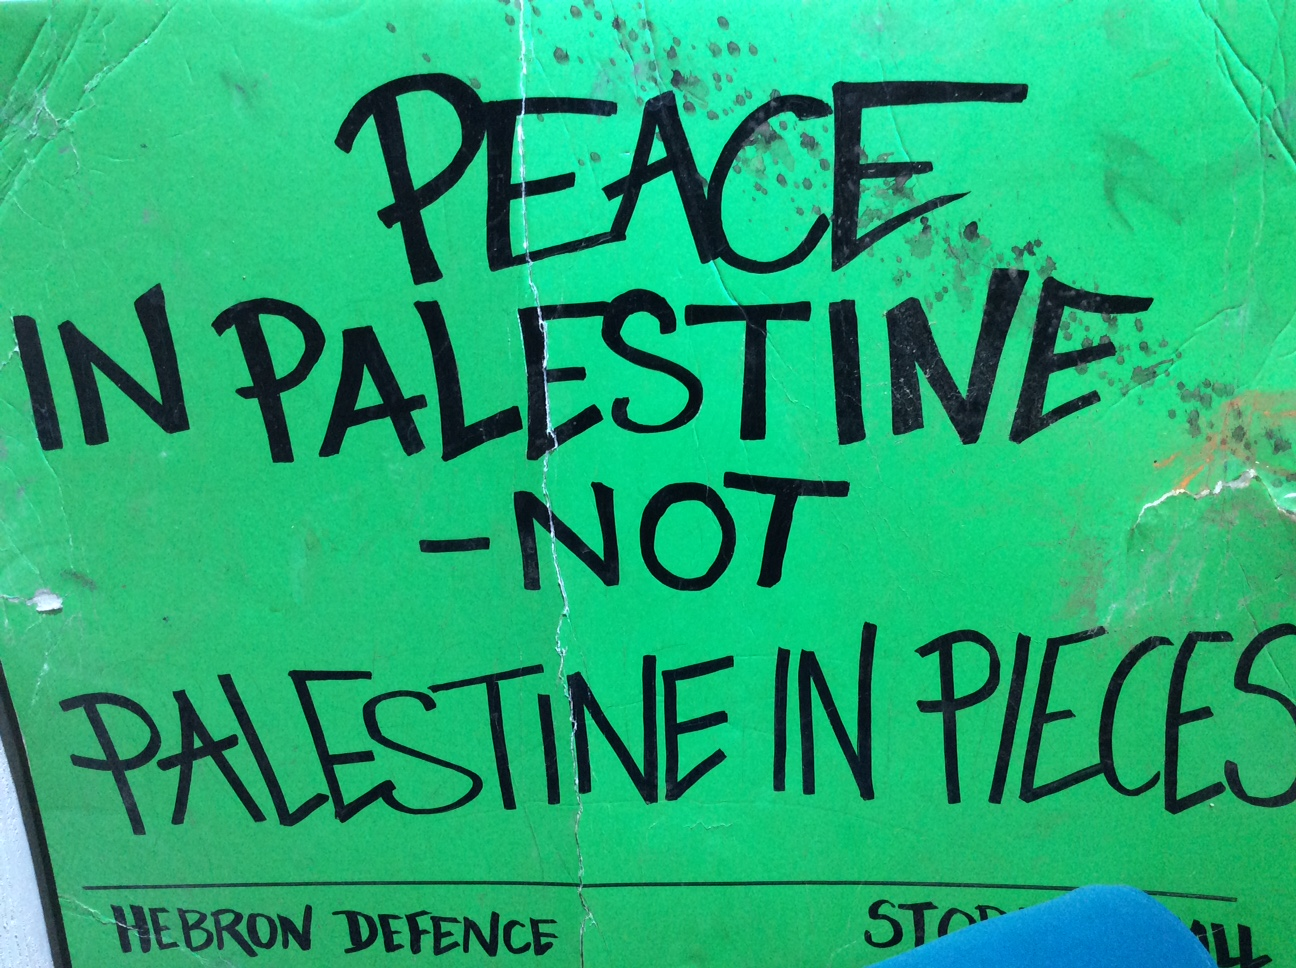 A protest sign on display at the Banksy Museum at the Walled Off Hotel in Bethlehem.